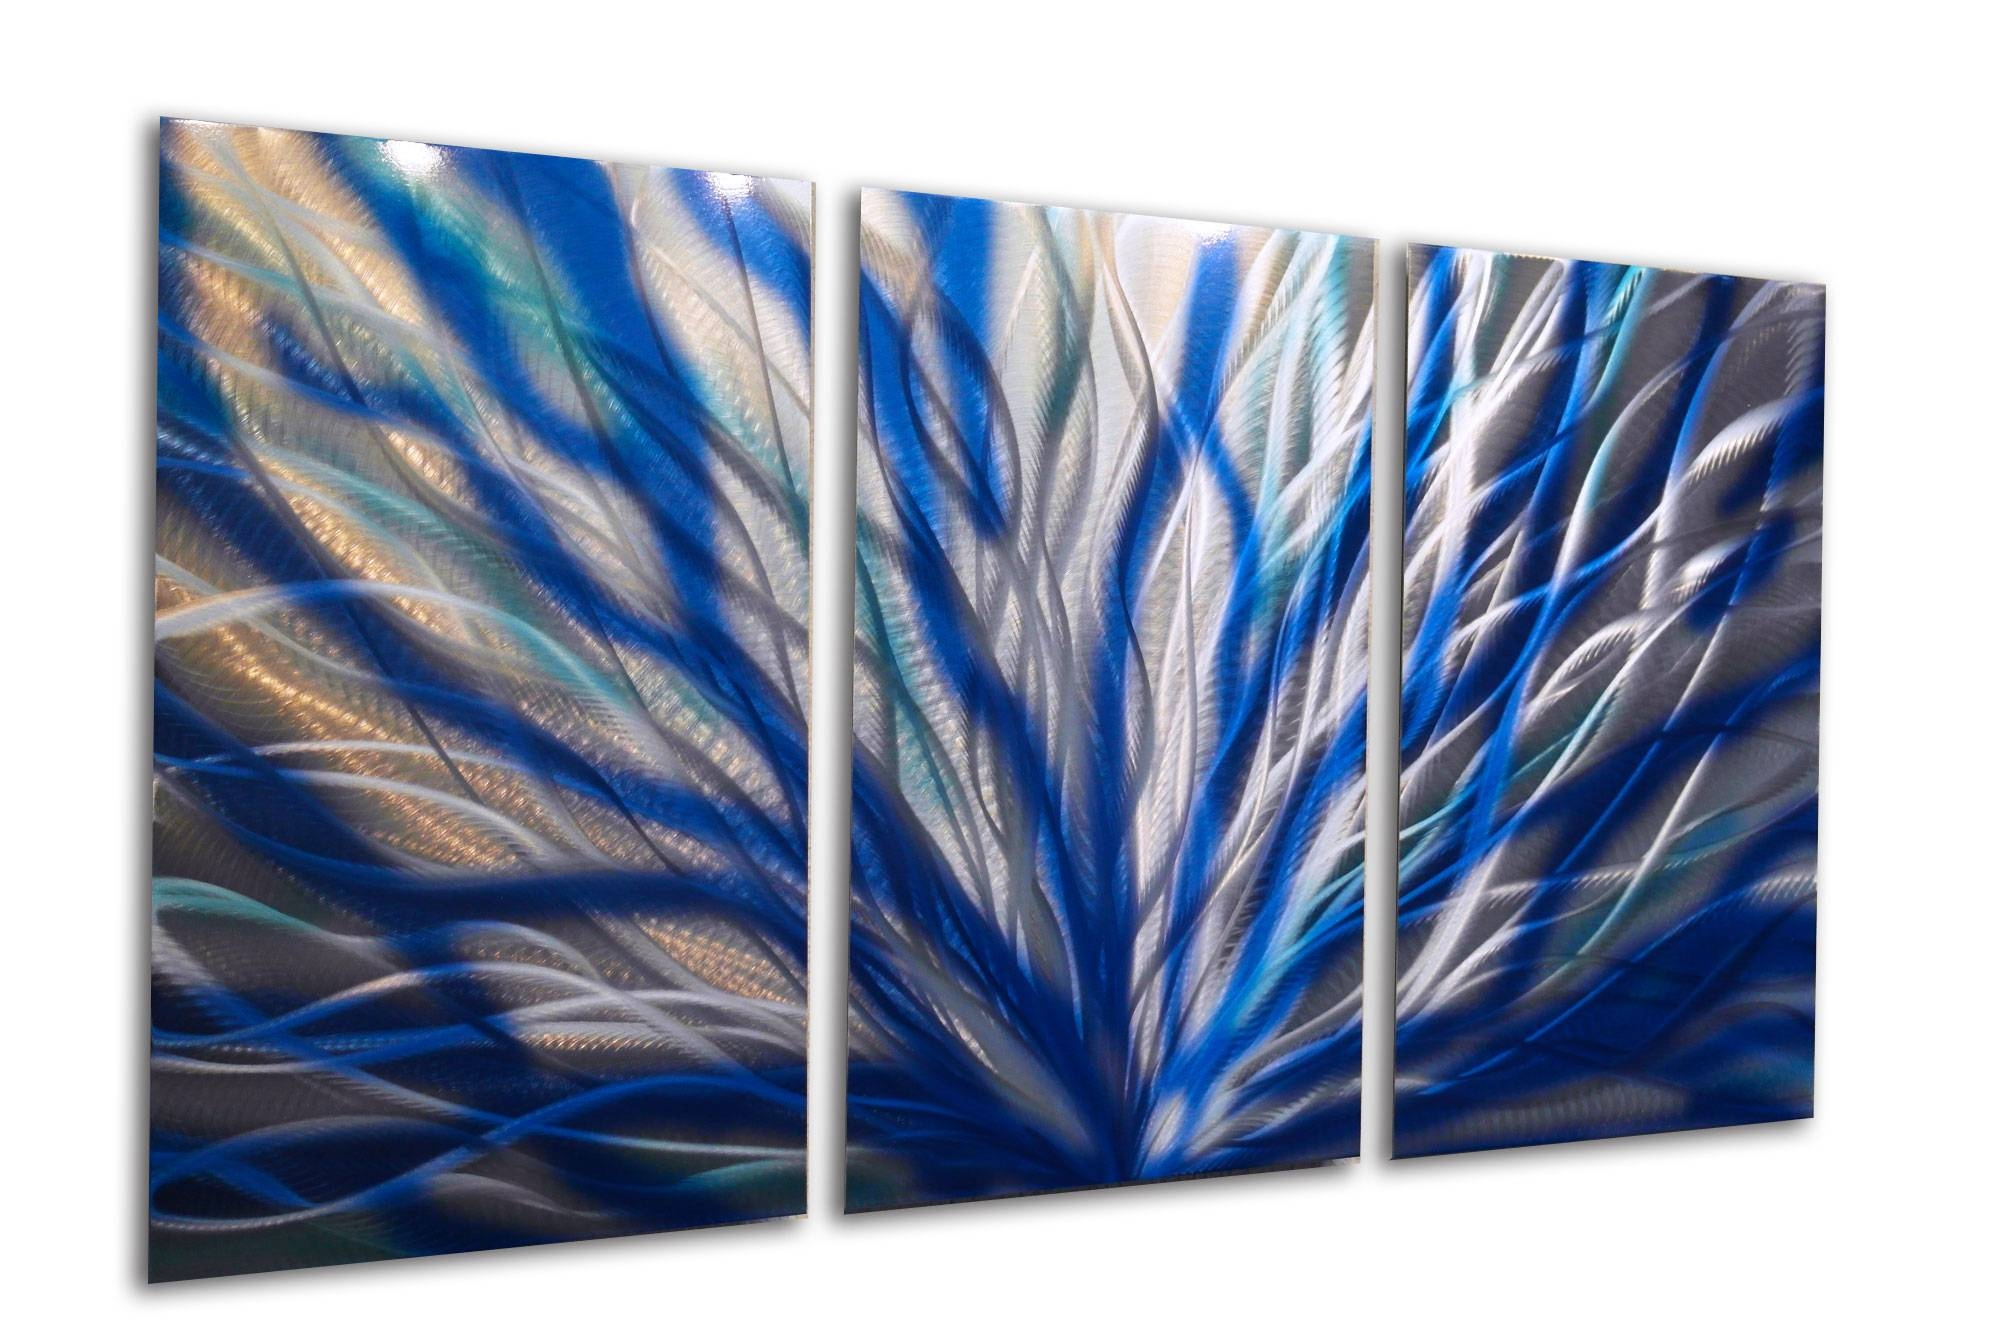 Radiance Blue 47 V2 – Metal Wall Art Abstract Sculpture Modern Within Most Recent Blue Wall Art (View 18 of 20)